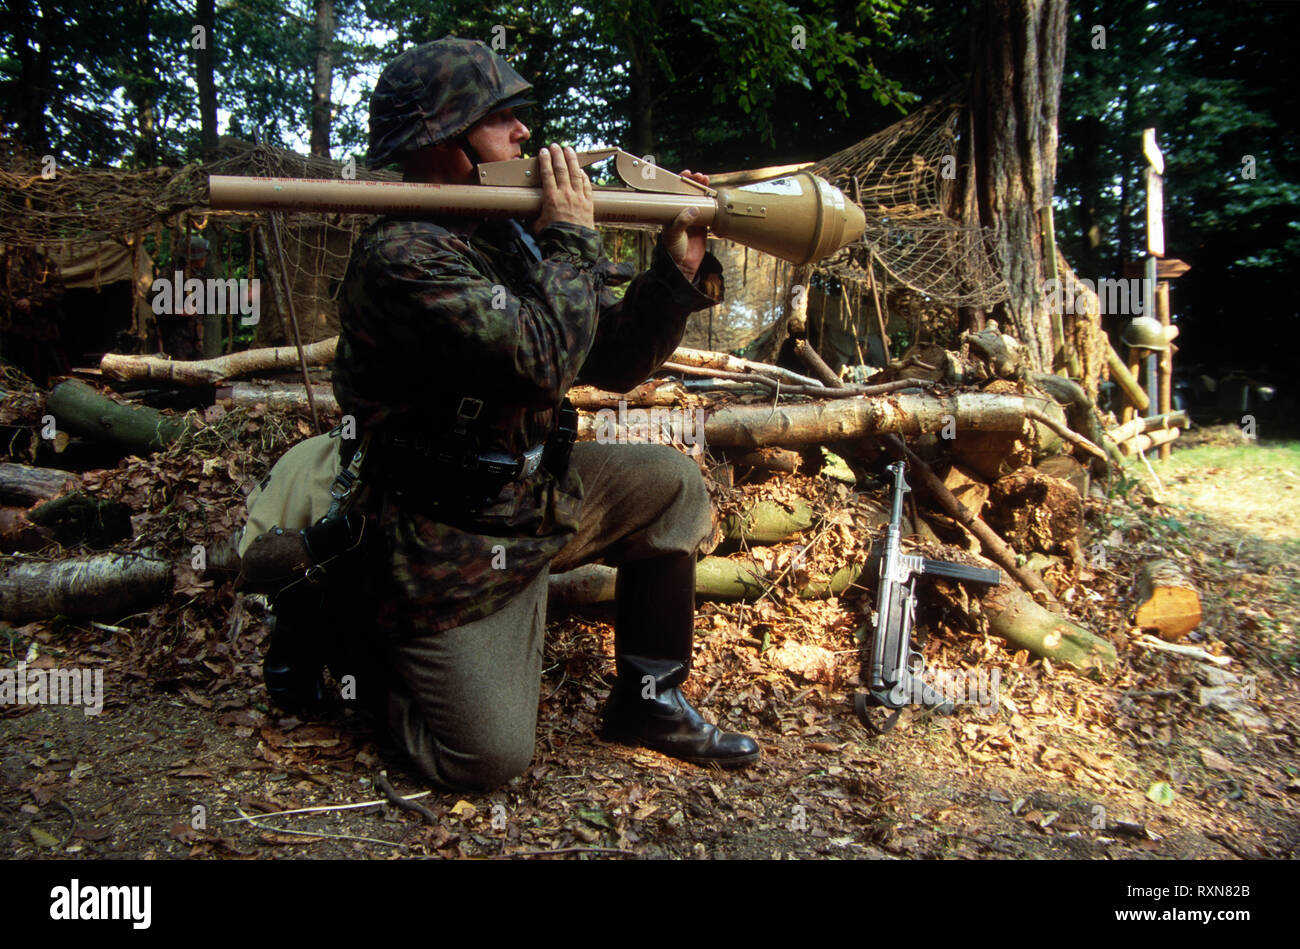 A WW2 Reenactor wears the period uniform of a Waffen SS soldier he fires a Panzerfaust anti tank weapon. - Stock Image